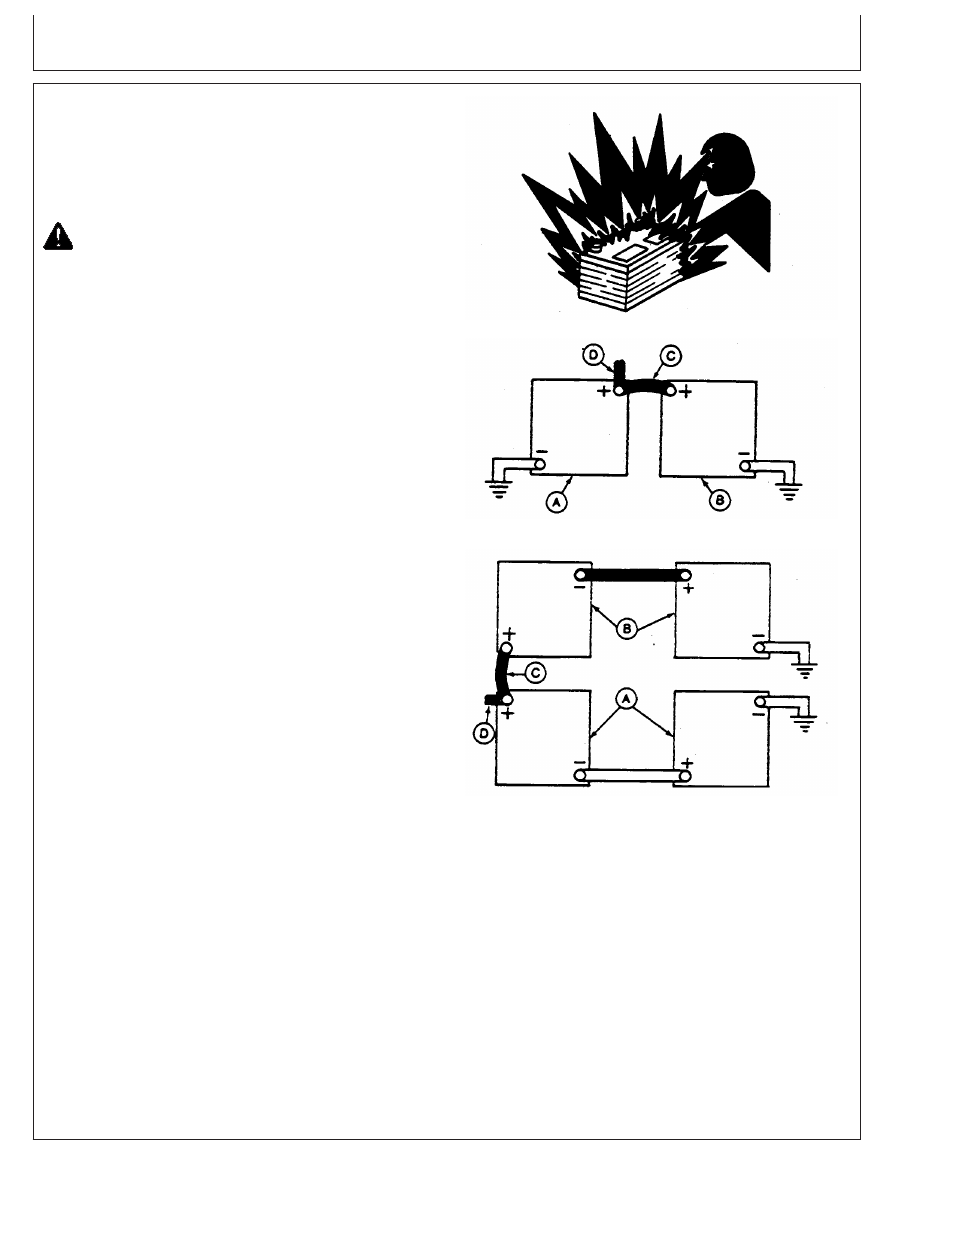 Using A Booster Battery Or Charger John Deere Cd4039df008 User 24 Volt Starter Wiring Diagram Manual Page 40 86